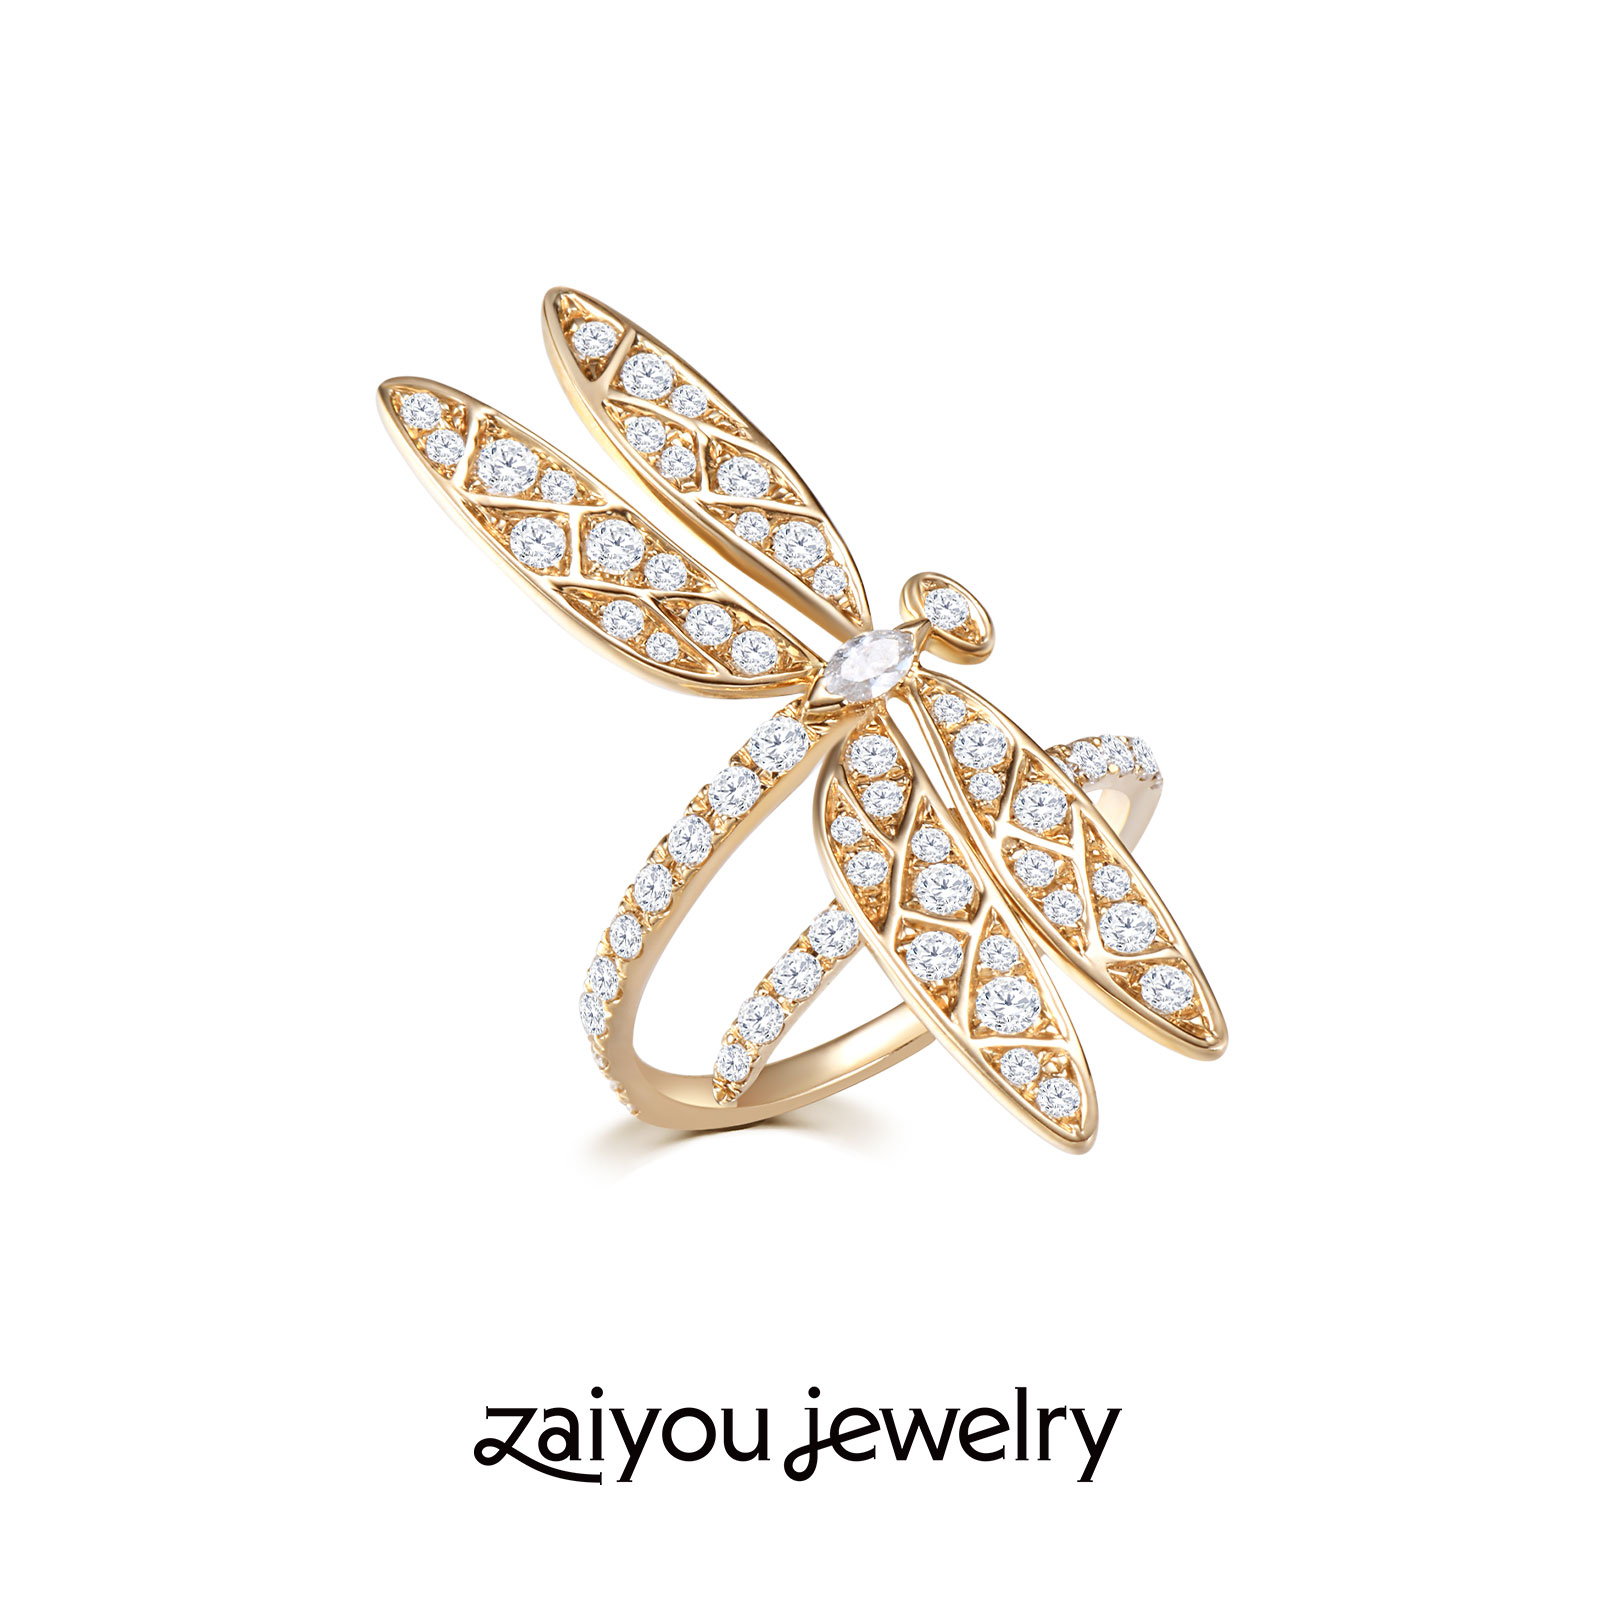 [growth of all things] K gold artistic creative artificial diamond jewelry ring of Qile Zaiyu Designer Series